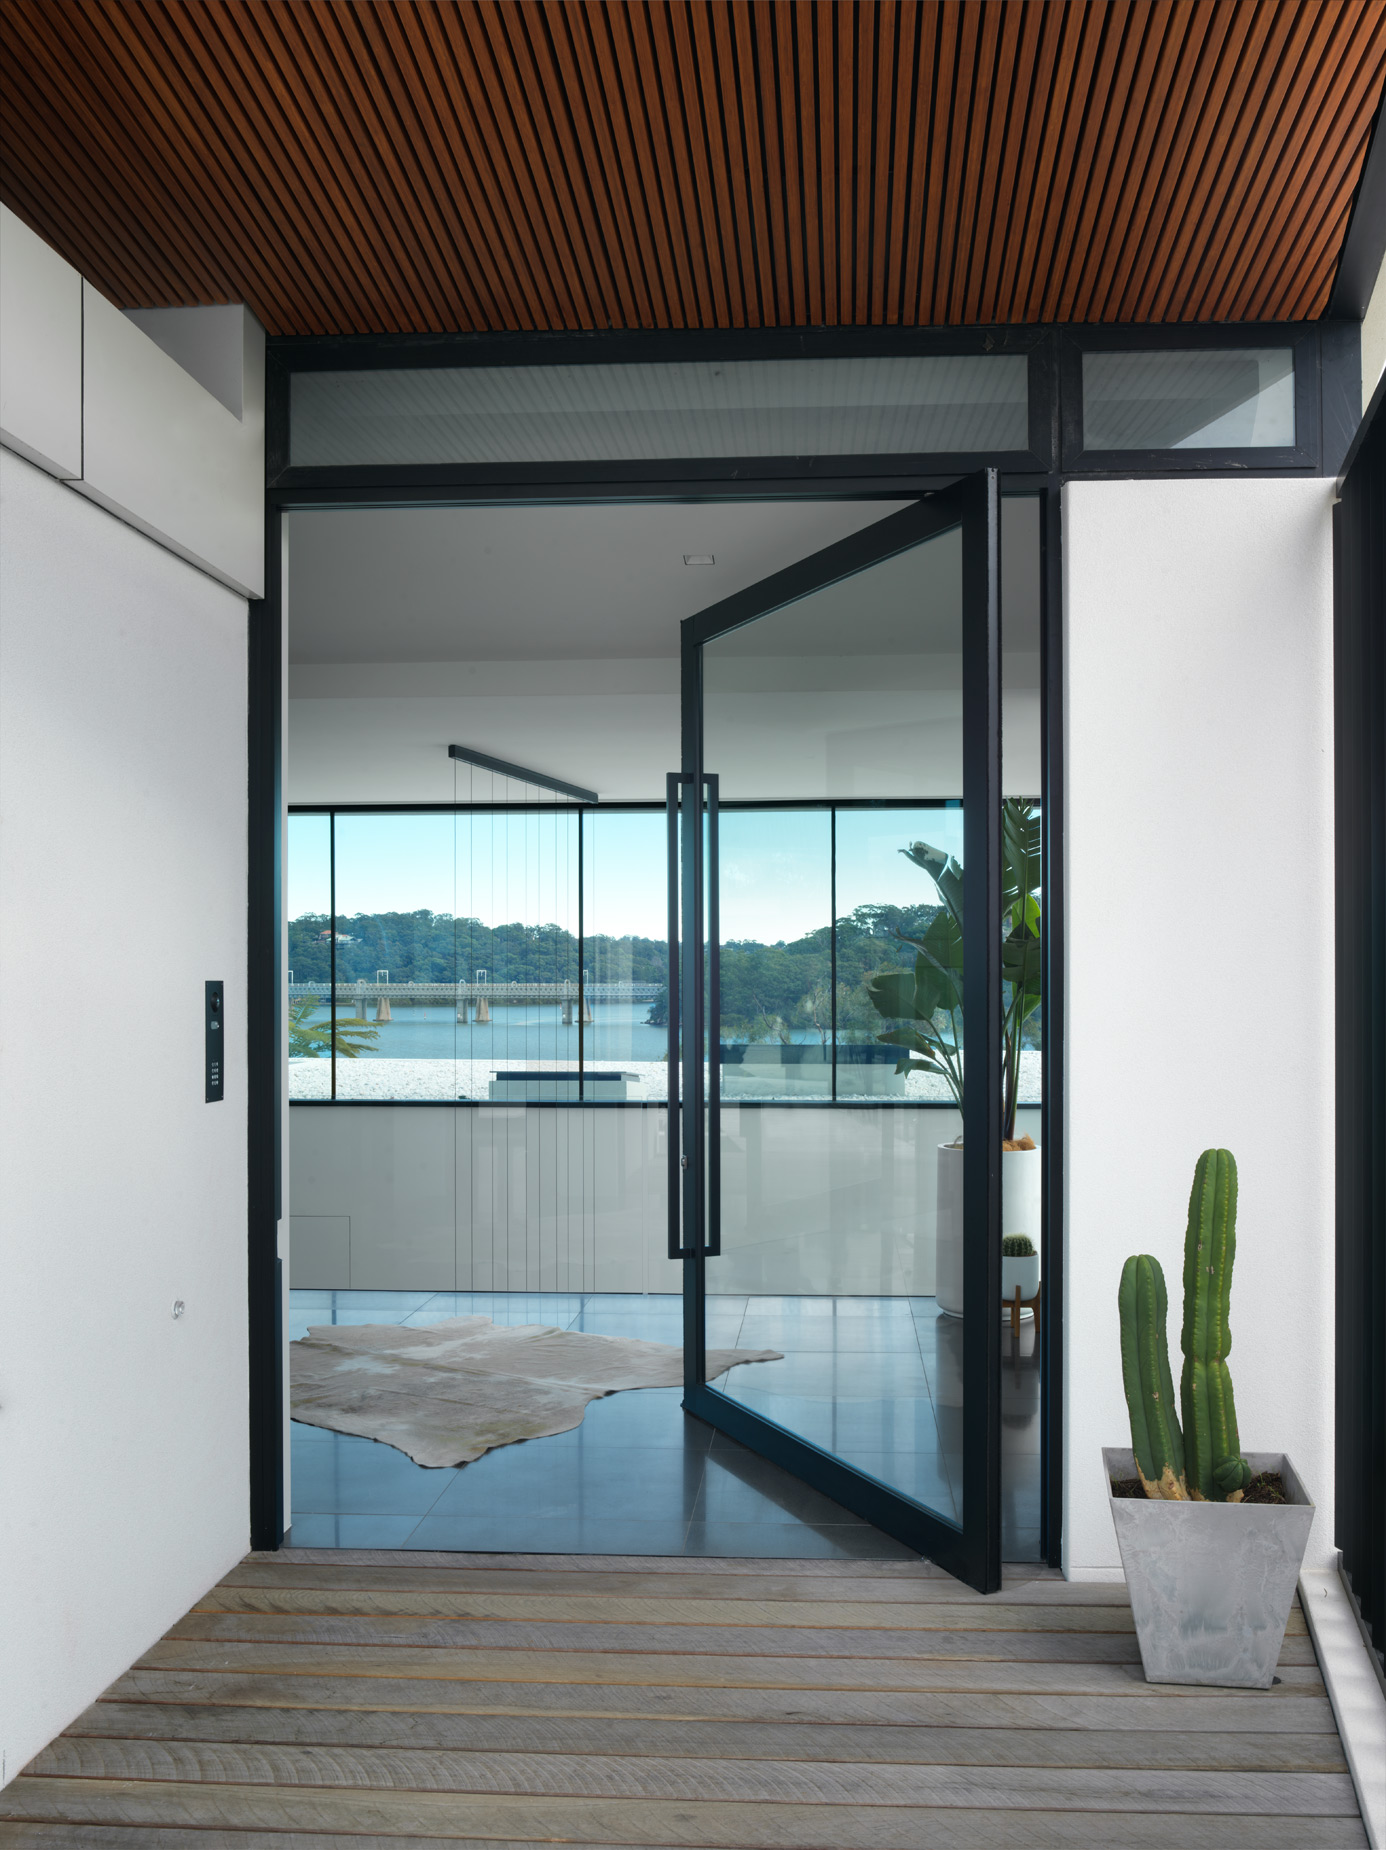 luke-butterly-2020-Oyster-Bay-House-by-Couvaras-Architecture-Sydney-NSW-201